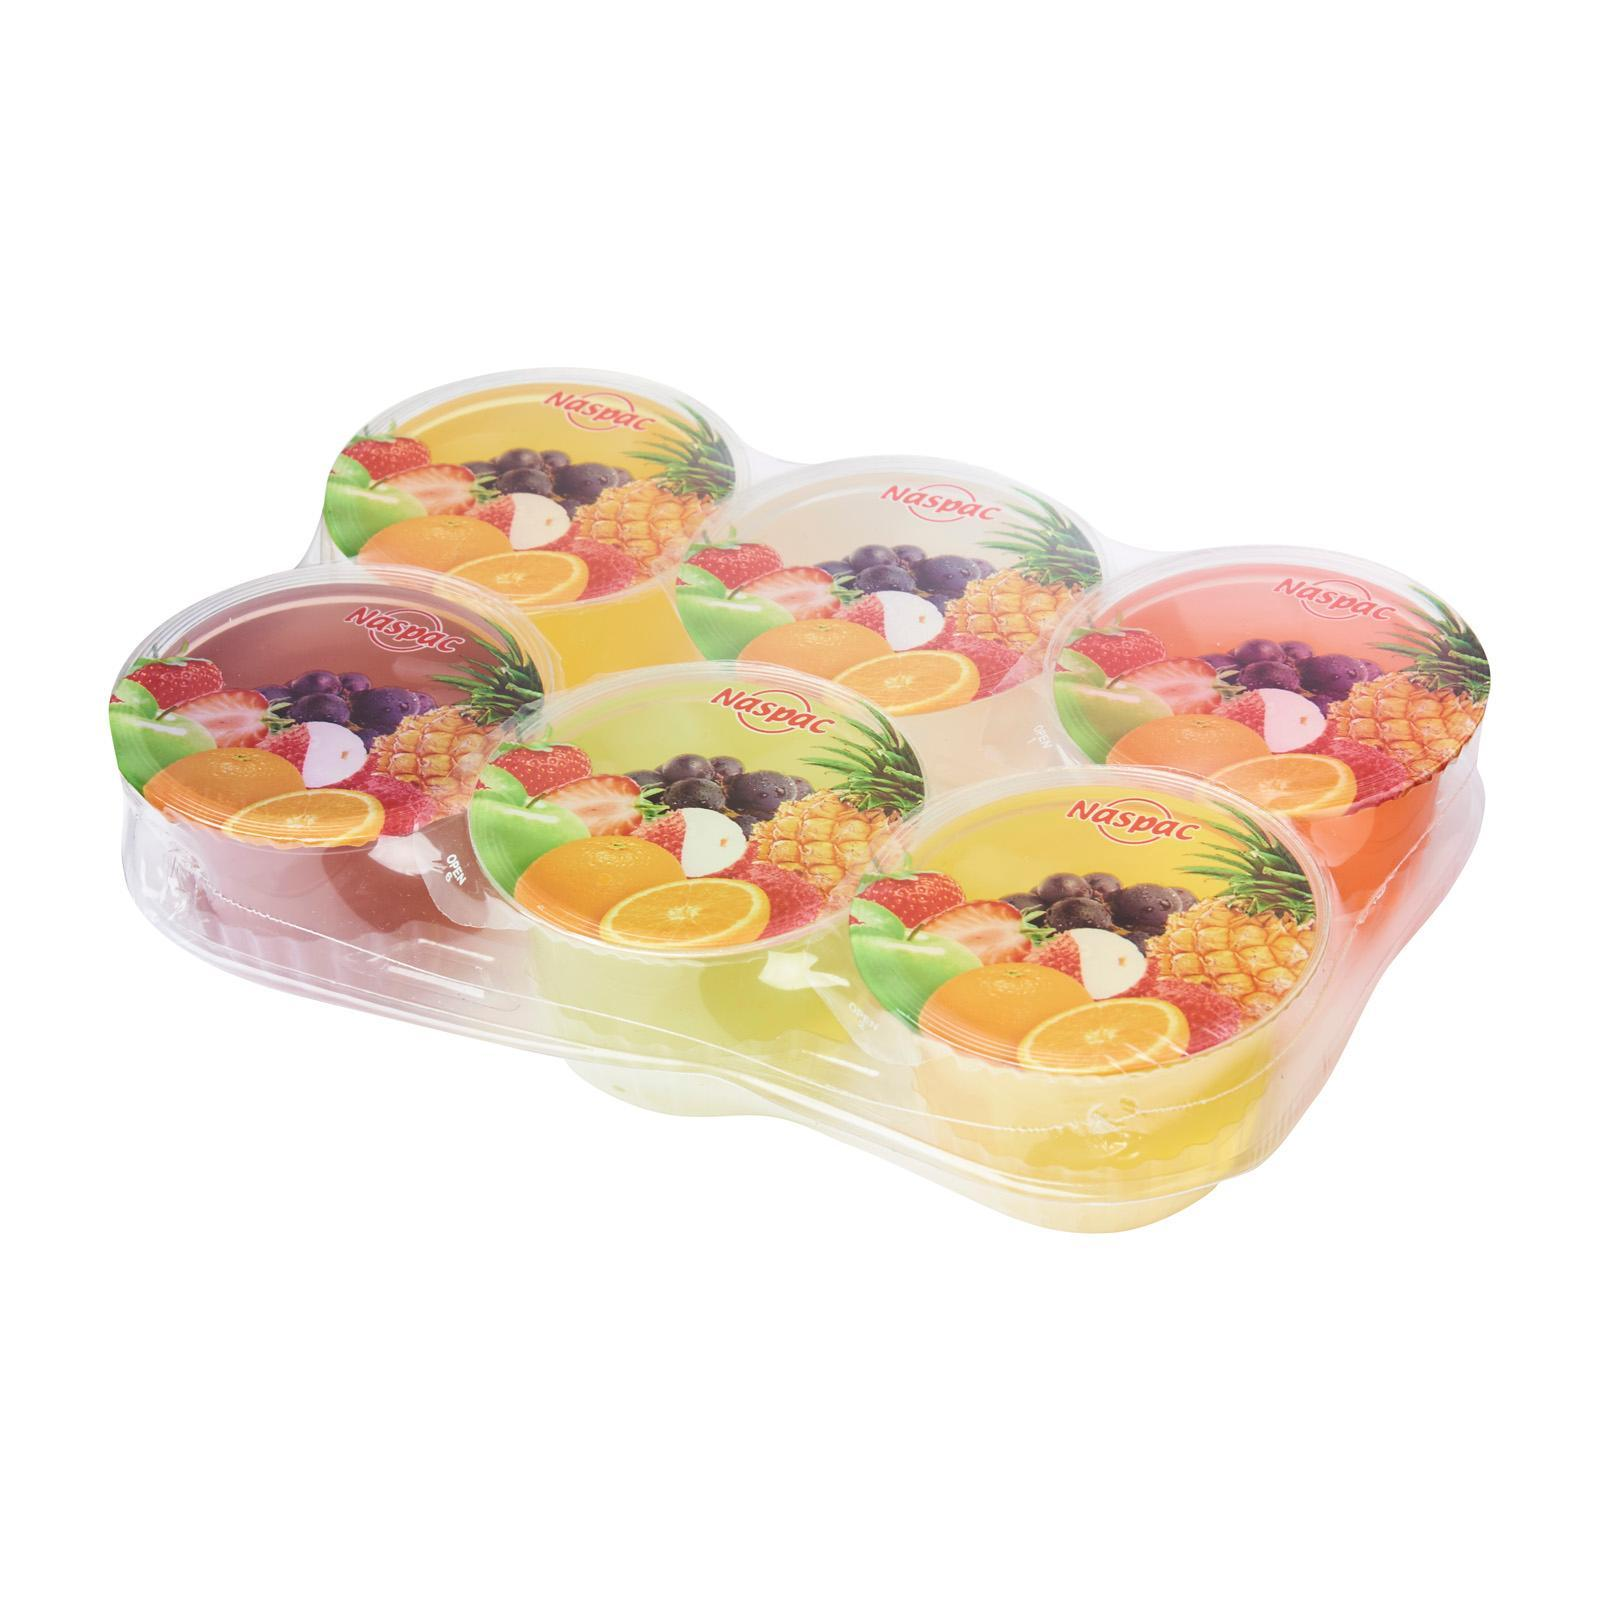 Naspac Jelly Asstorted Flavors With Nata De Coco